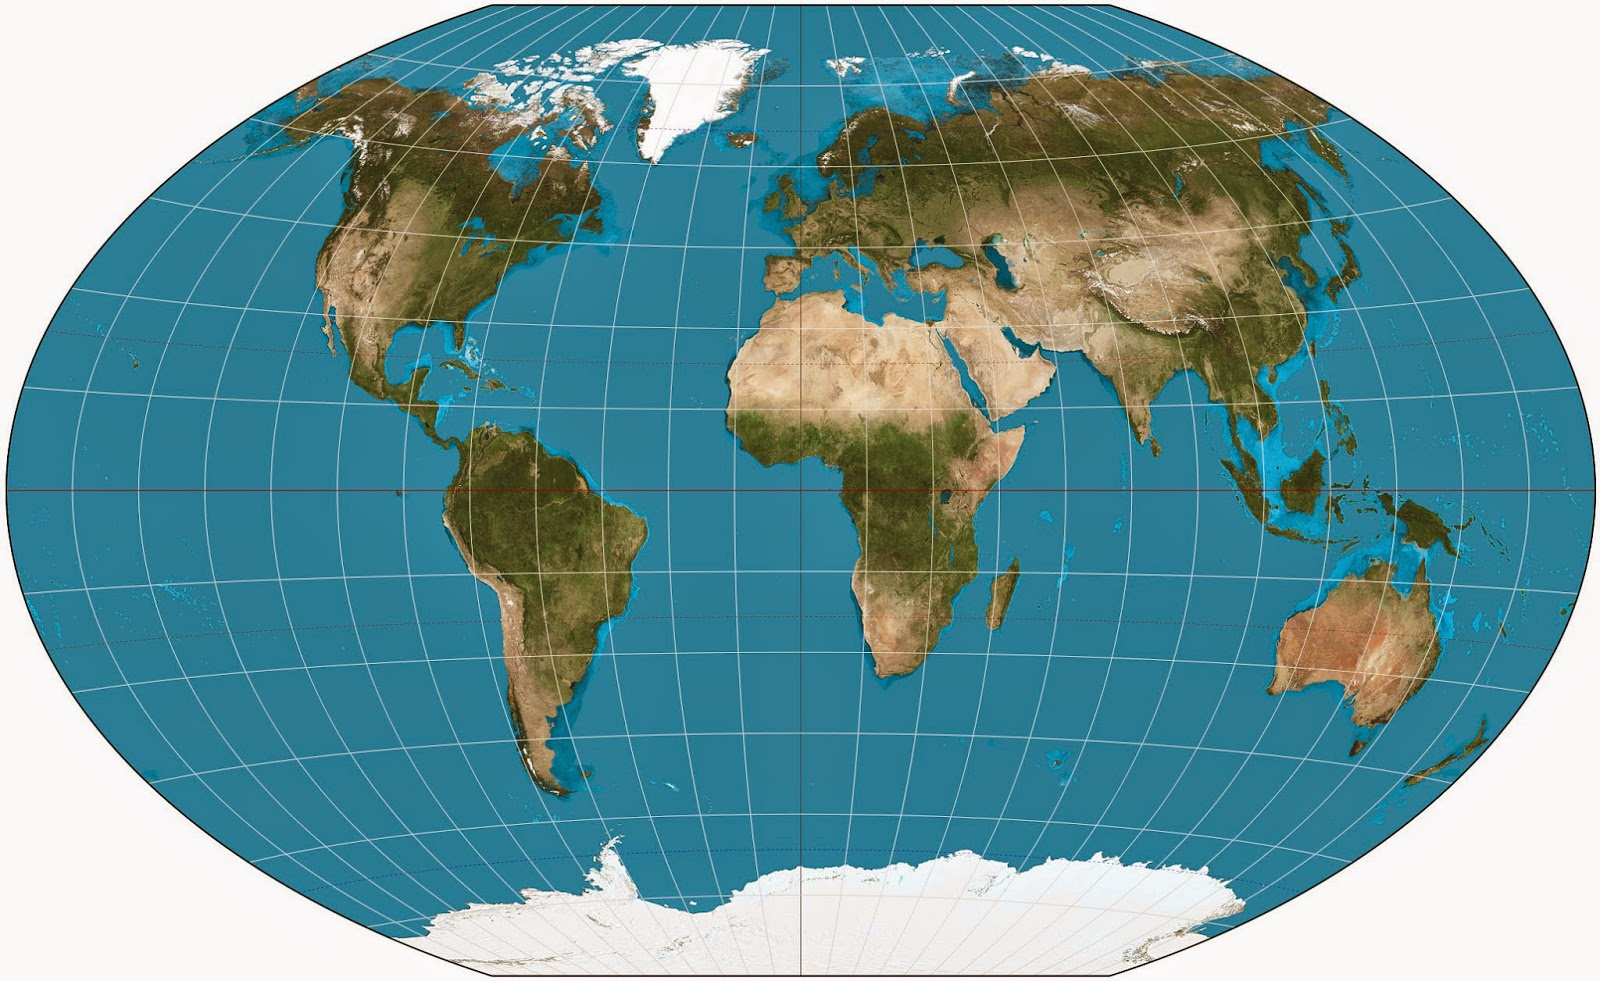 Image of the entire globe